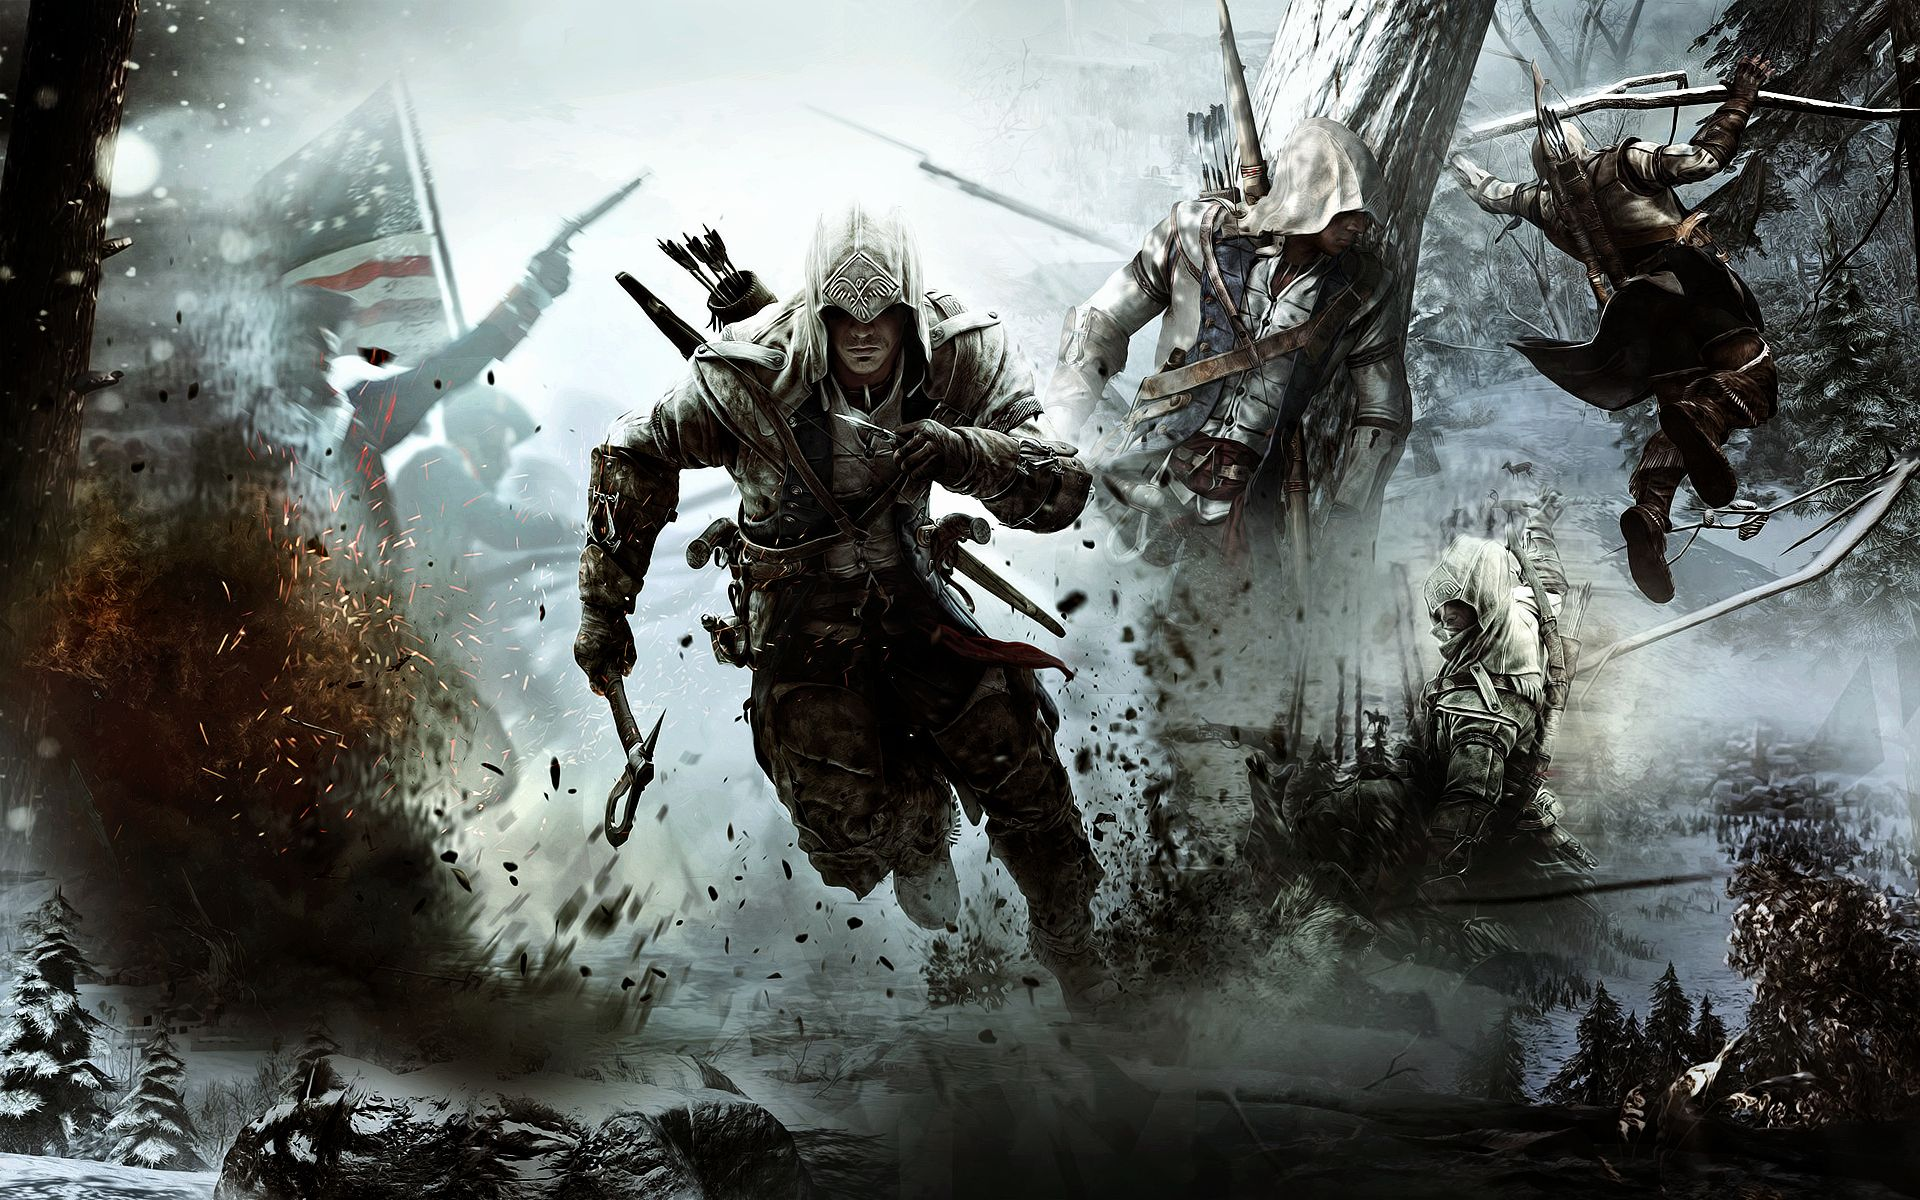 Assassin's Creed Cool Wallpapers